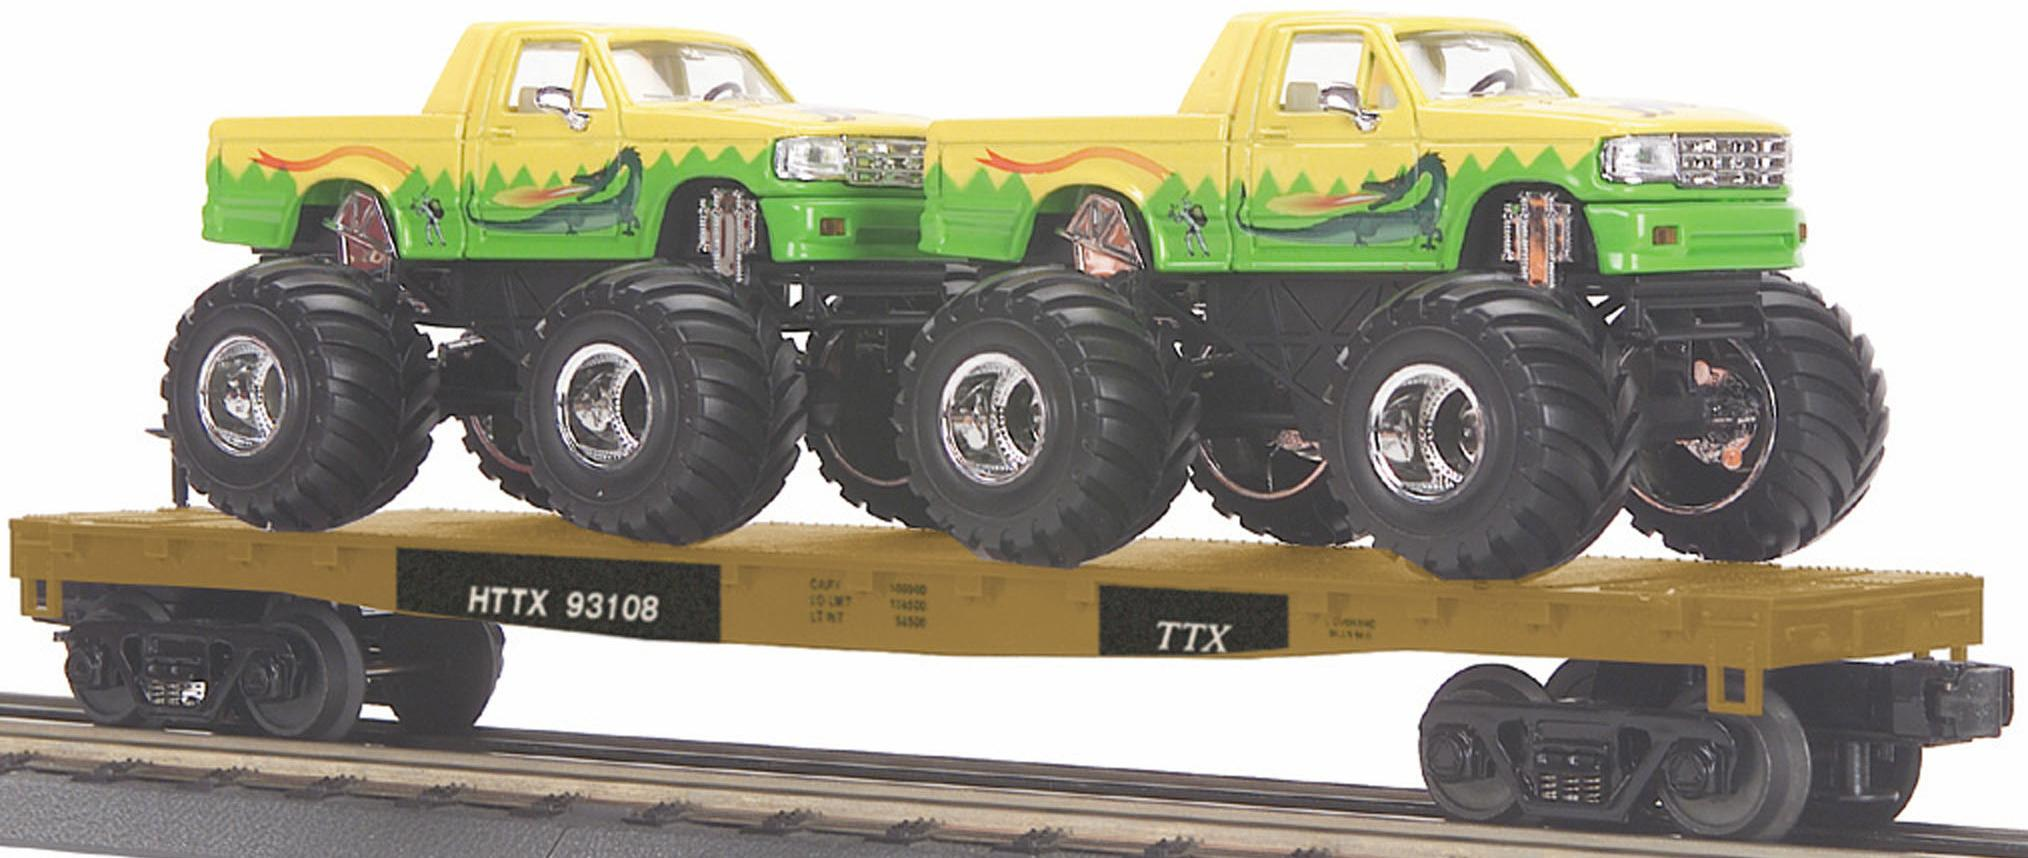 HTTX Flat Car w/(2) Monster Trucks image